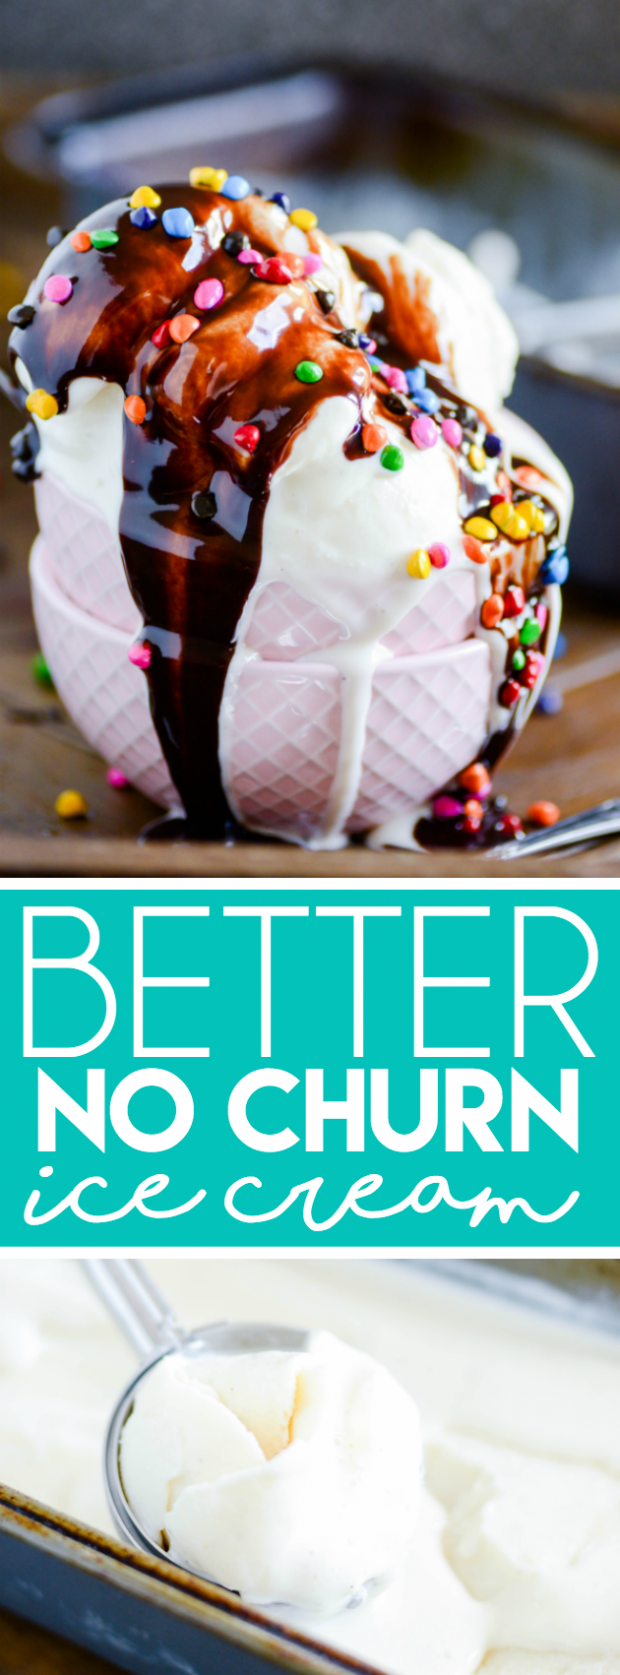 This is THE PERFECT no churn ice cream recipe. It's just two ingredients (like the other famous no churn recipe), but this one has a way better texture, and it's not overly sweet! It seriously tastes and feels JUST LIKE real ice cream.